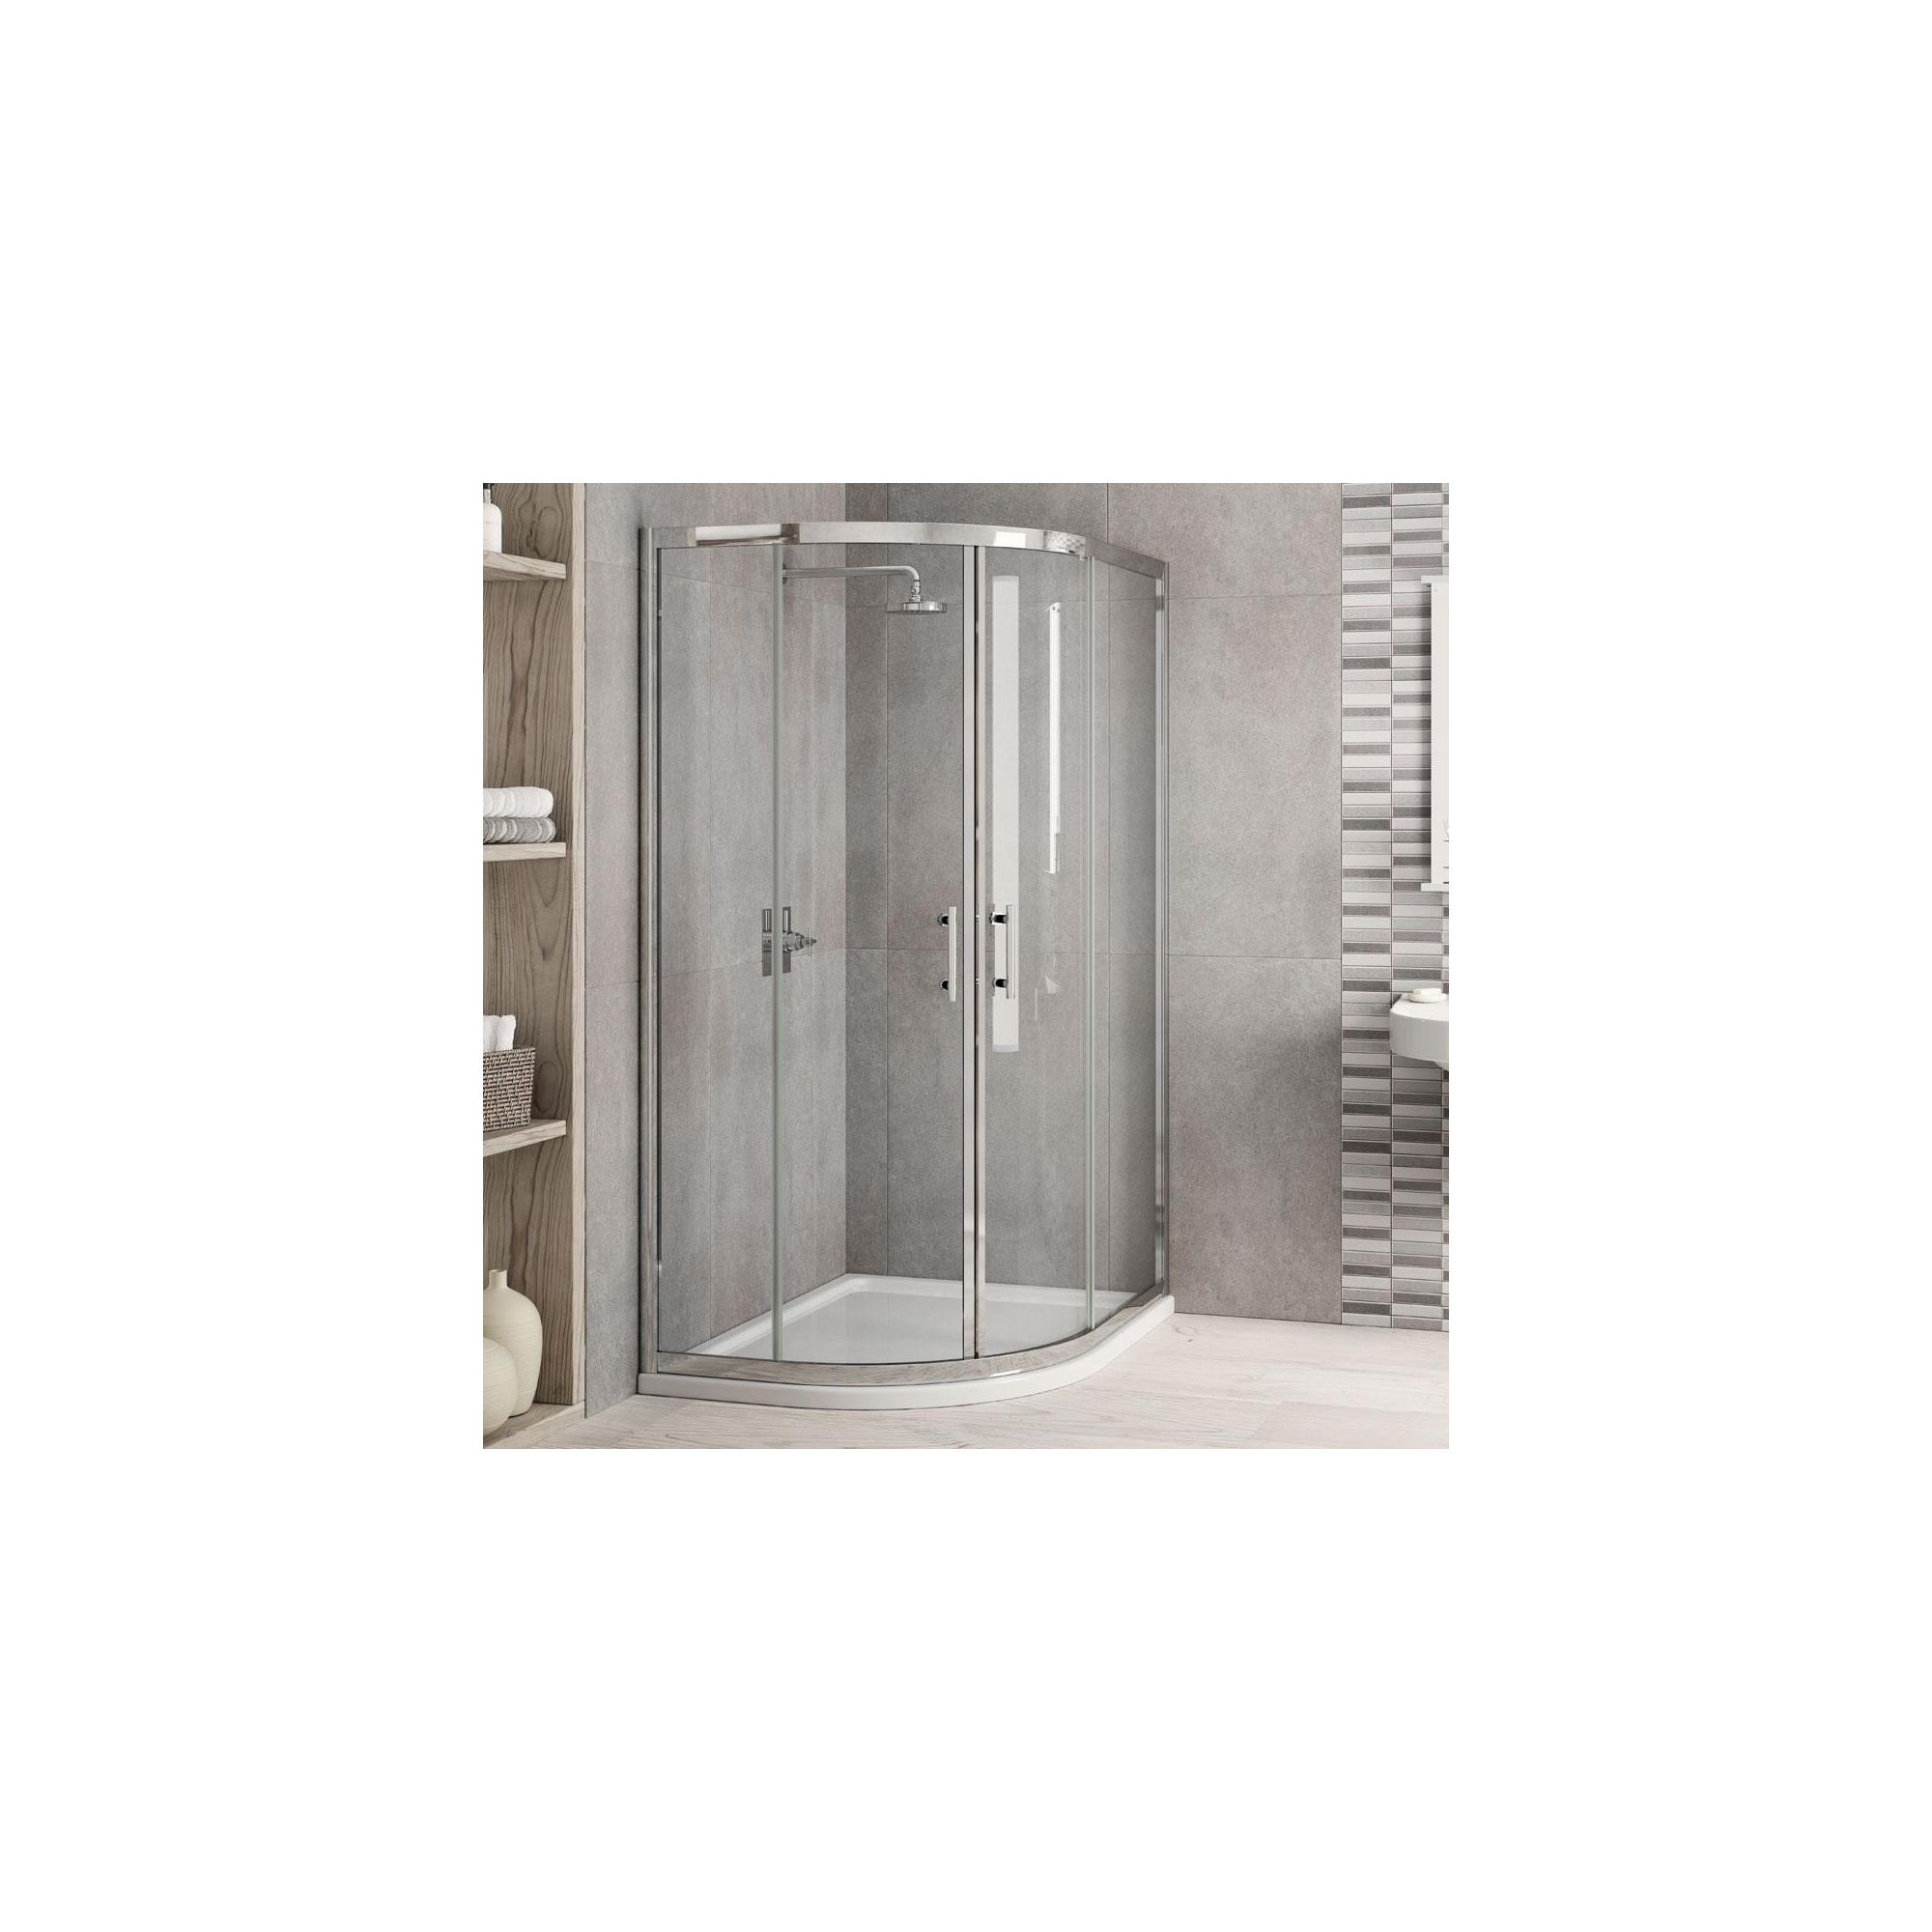 Elemis Inspire Offset Quadrant Shower Enclosure, 1200mm x 900mm, 6mm Glass, Low Profile Tray, Right Handed at Tesco Direct